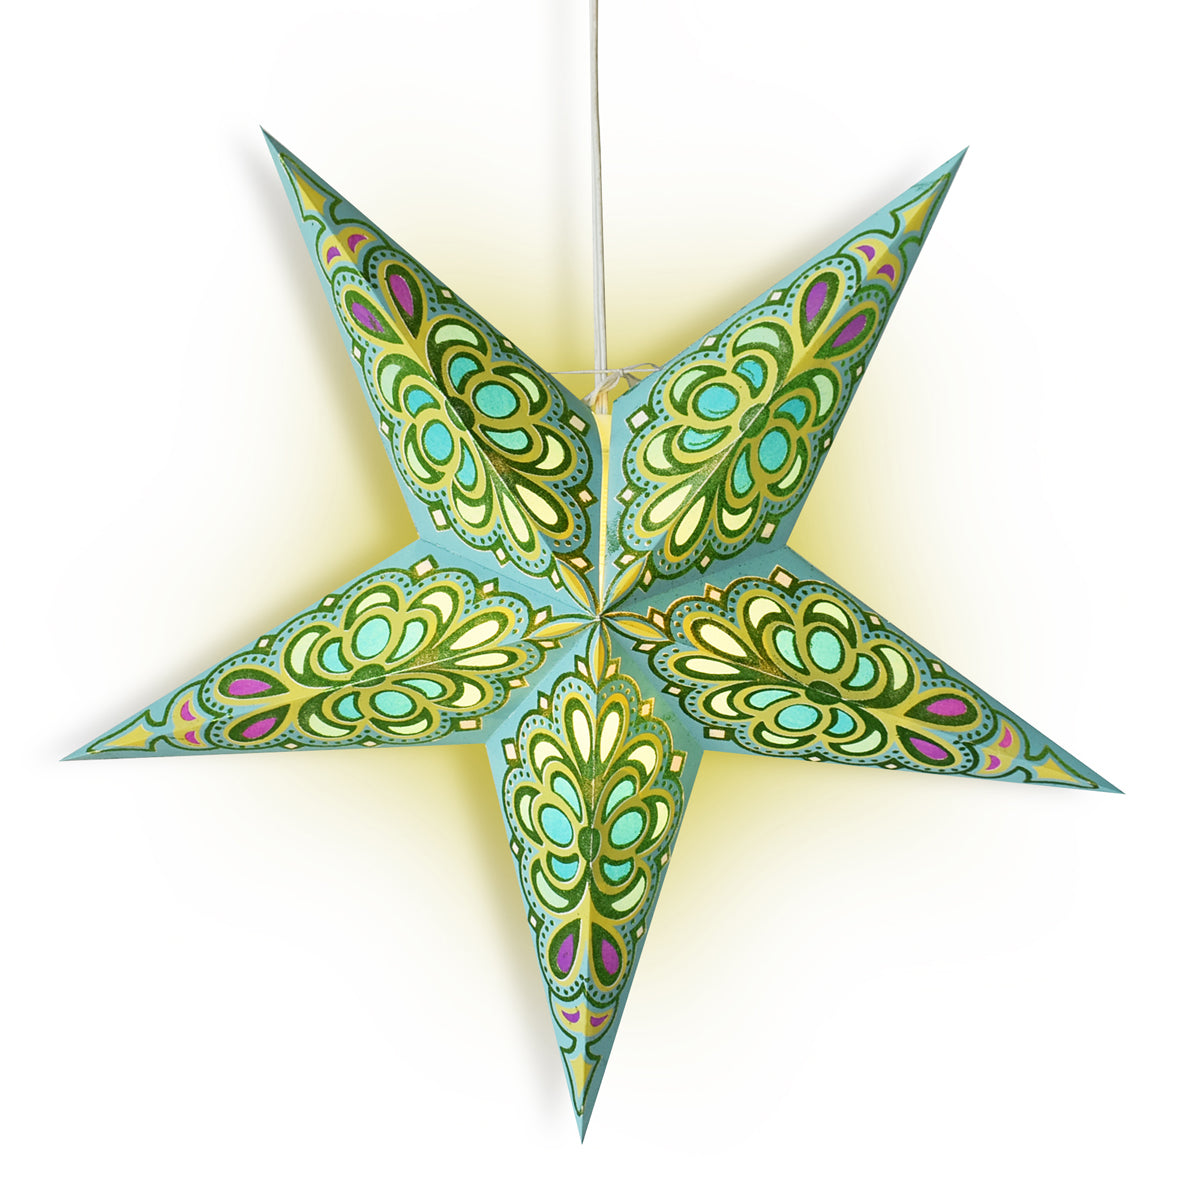 "24"" Green / Turquoise Merry Gold Glitter Paper Star Lantern, Chinese Hanging Wedding & Party Decoration - PaperLanternStore.com - Paper Lanterns, Decor, Party Lights & More"